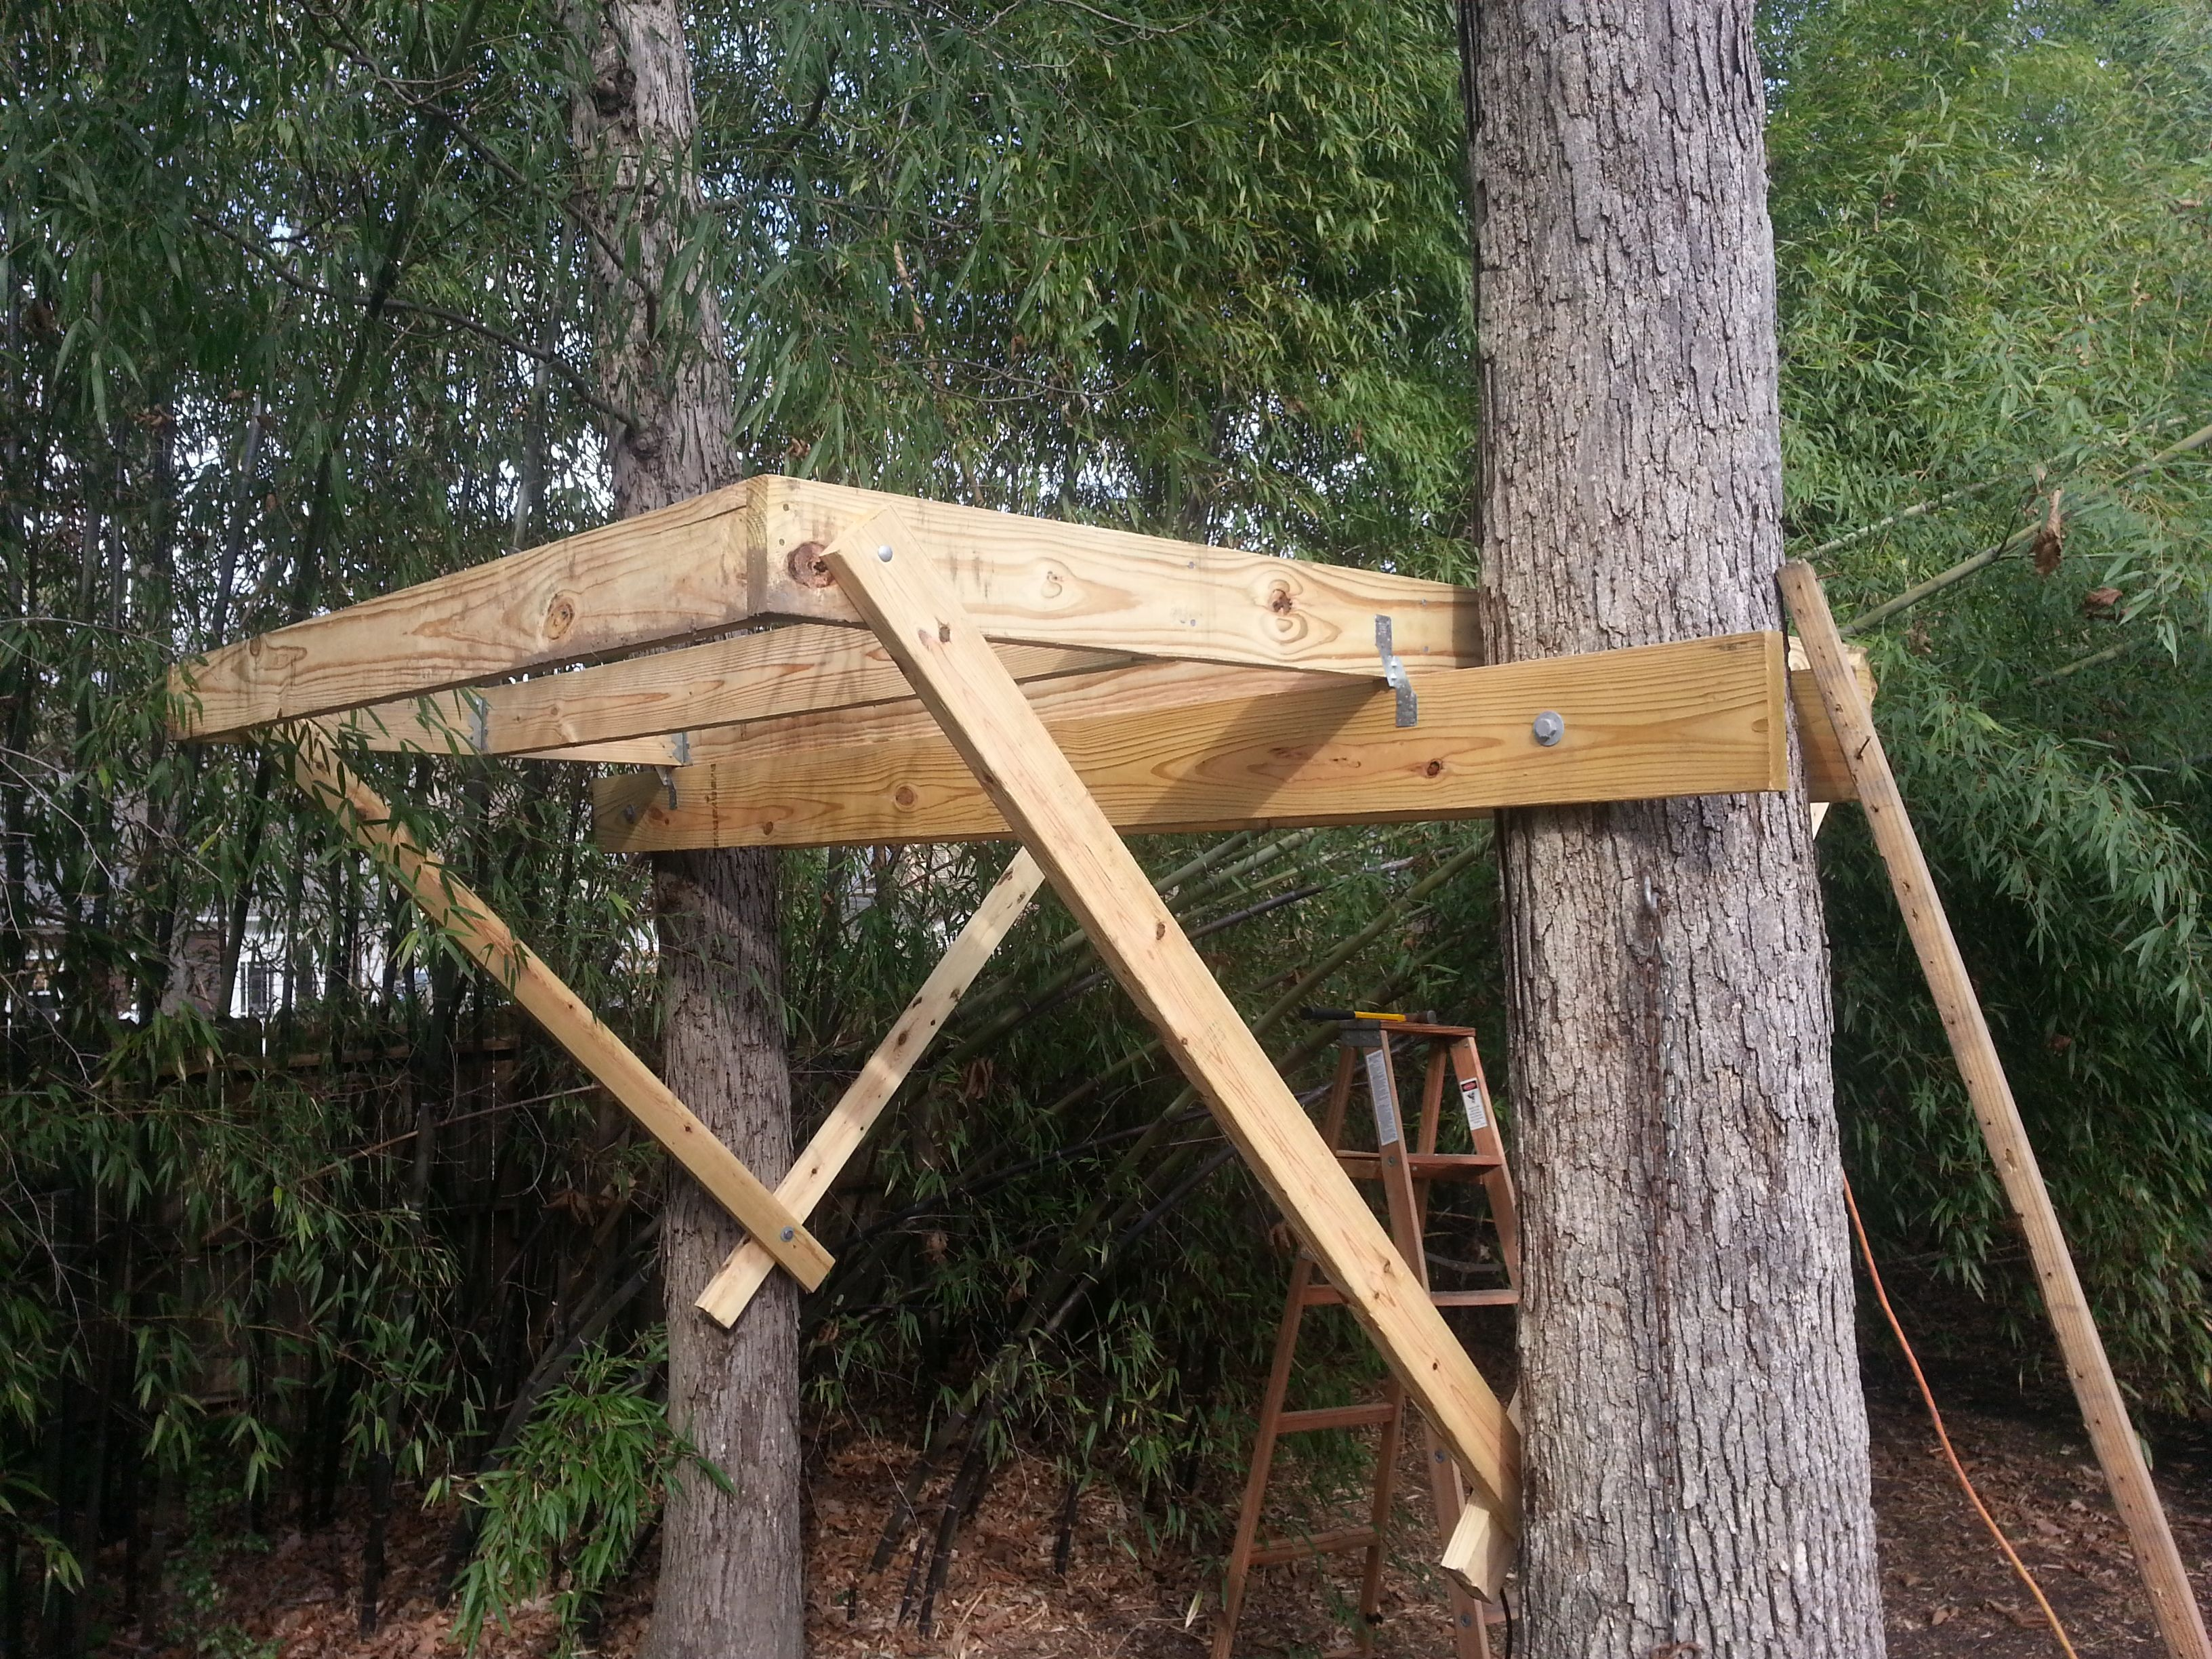 c20f76549804625207a5e08f21c99842 Plan How To Build A Treehouse on log cabin treehouse plans, small treehouse plans, model treehouse plans, diy treehouse plans, minecraft treehouse plans,